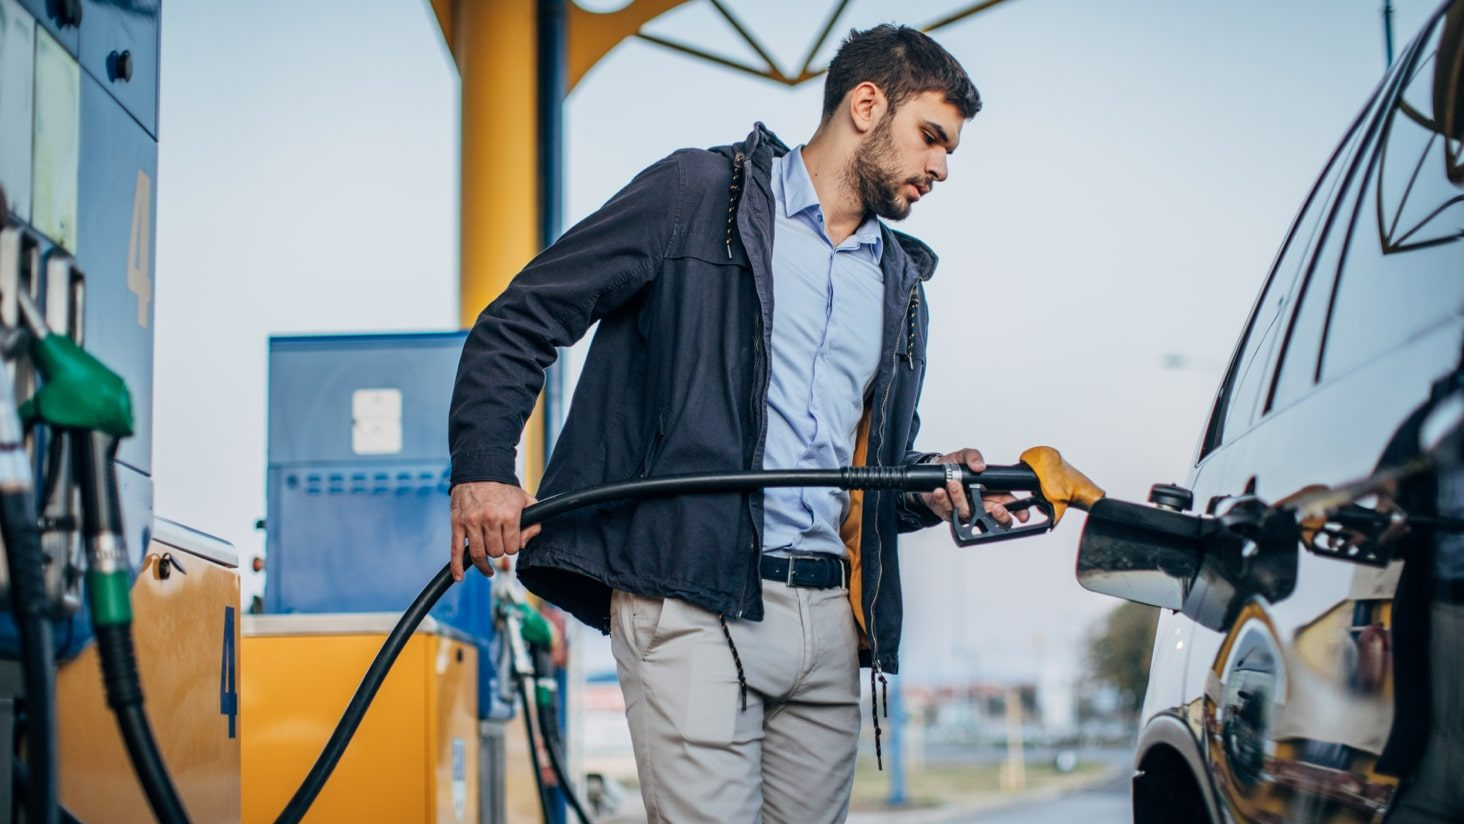 People filling up petrol on a road trip, considering budget plans.